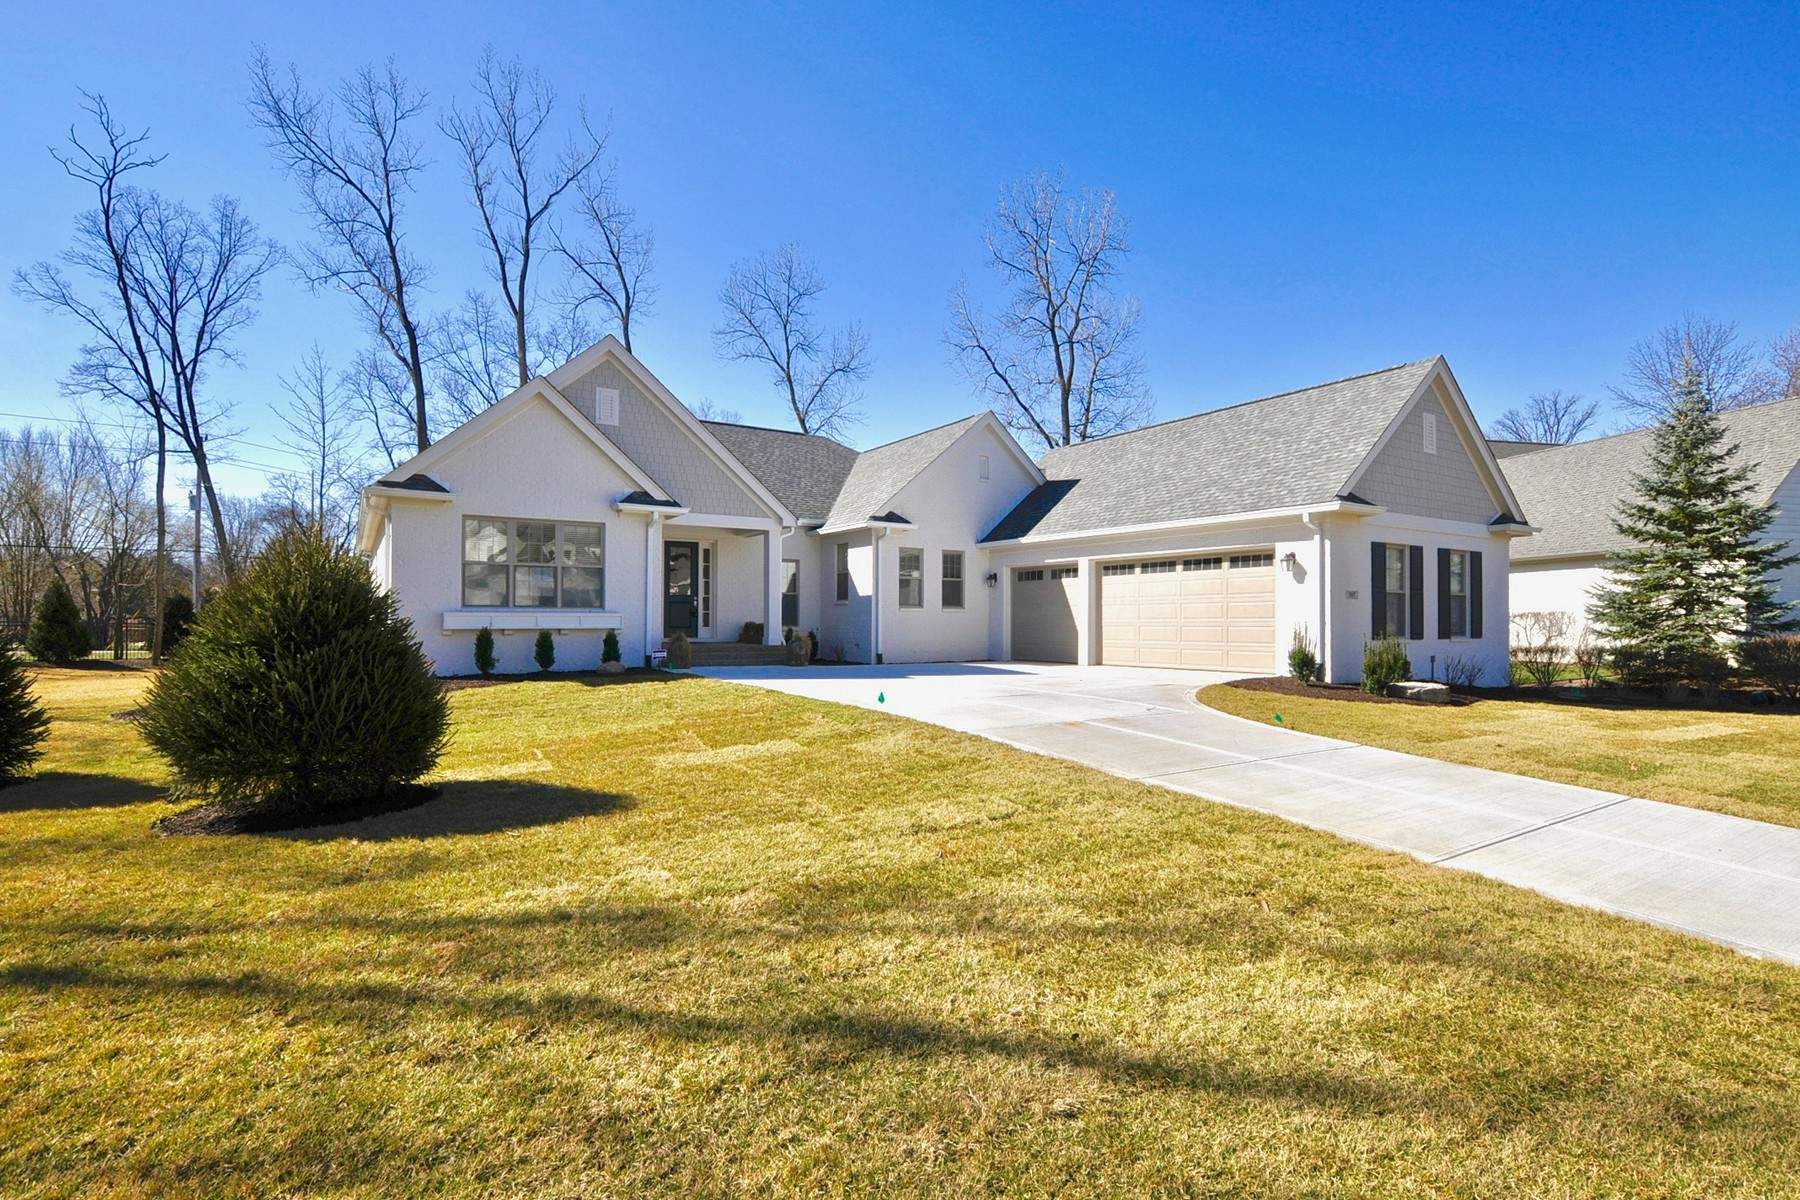 Single Family Home for Sale at Luxury and Top of the Line Features 207 Willowrun Way Indianapolis, Indiana 46260 United States